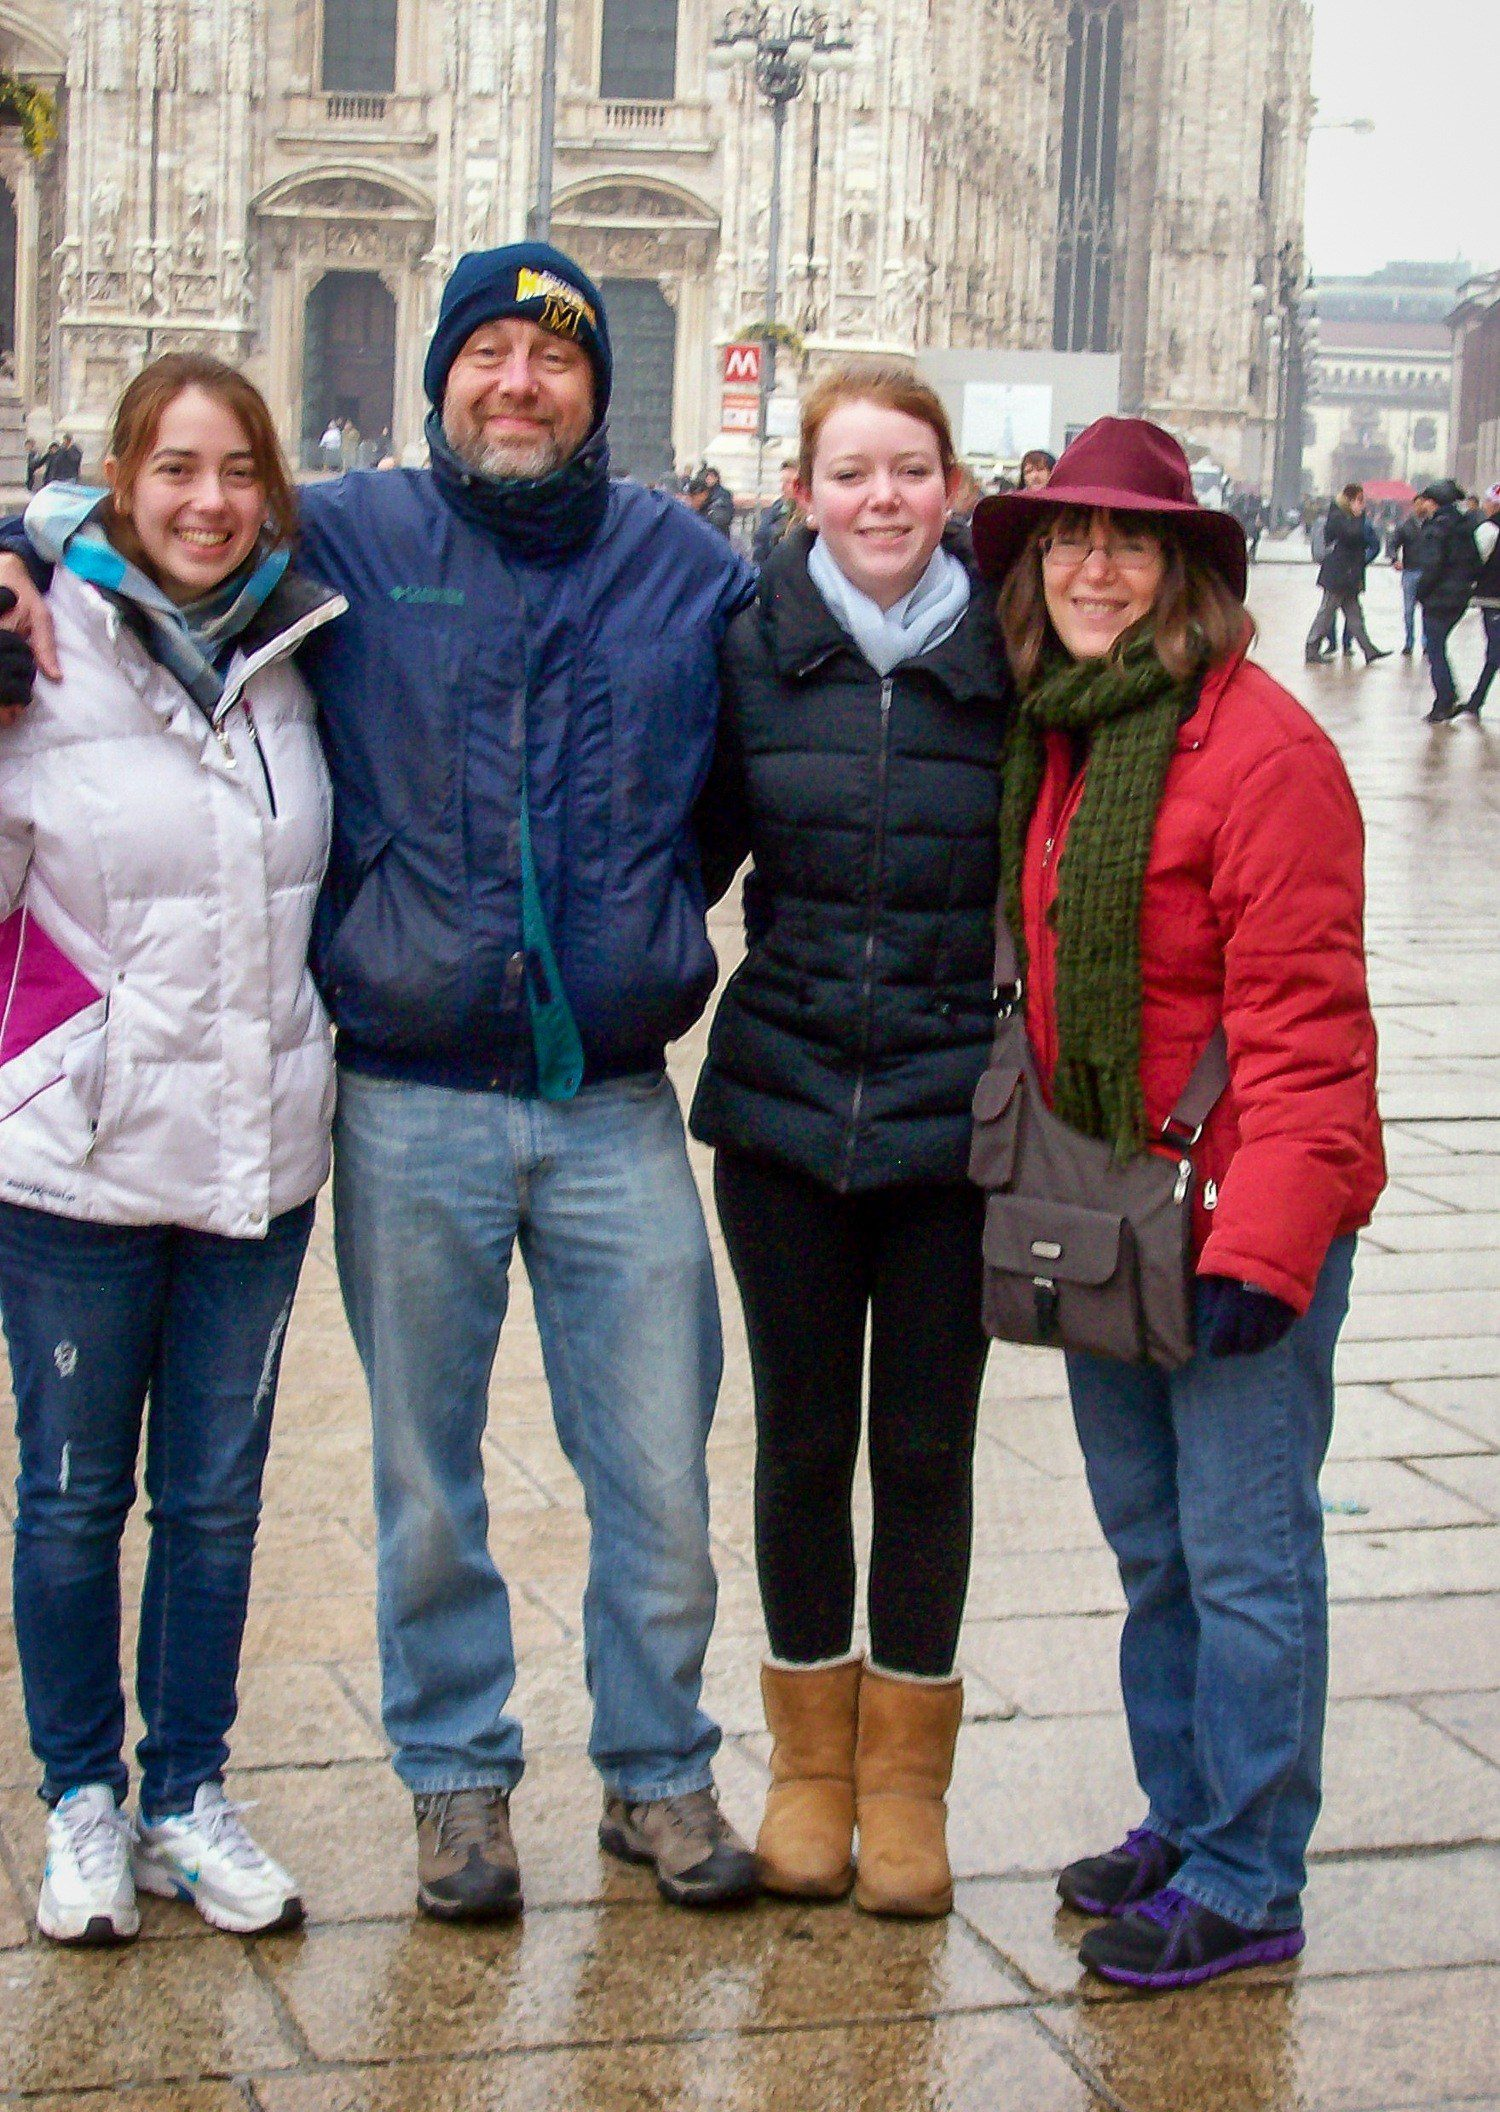 Megan and her family at the Duomo (cathedral) in Milan, Italy.